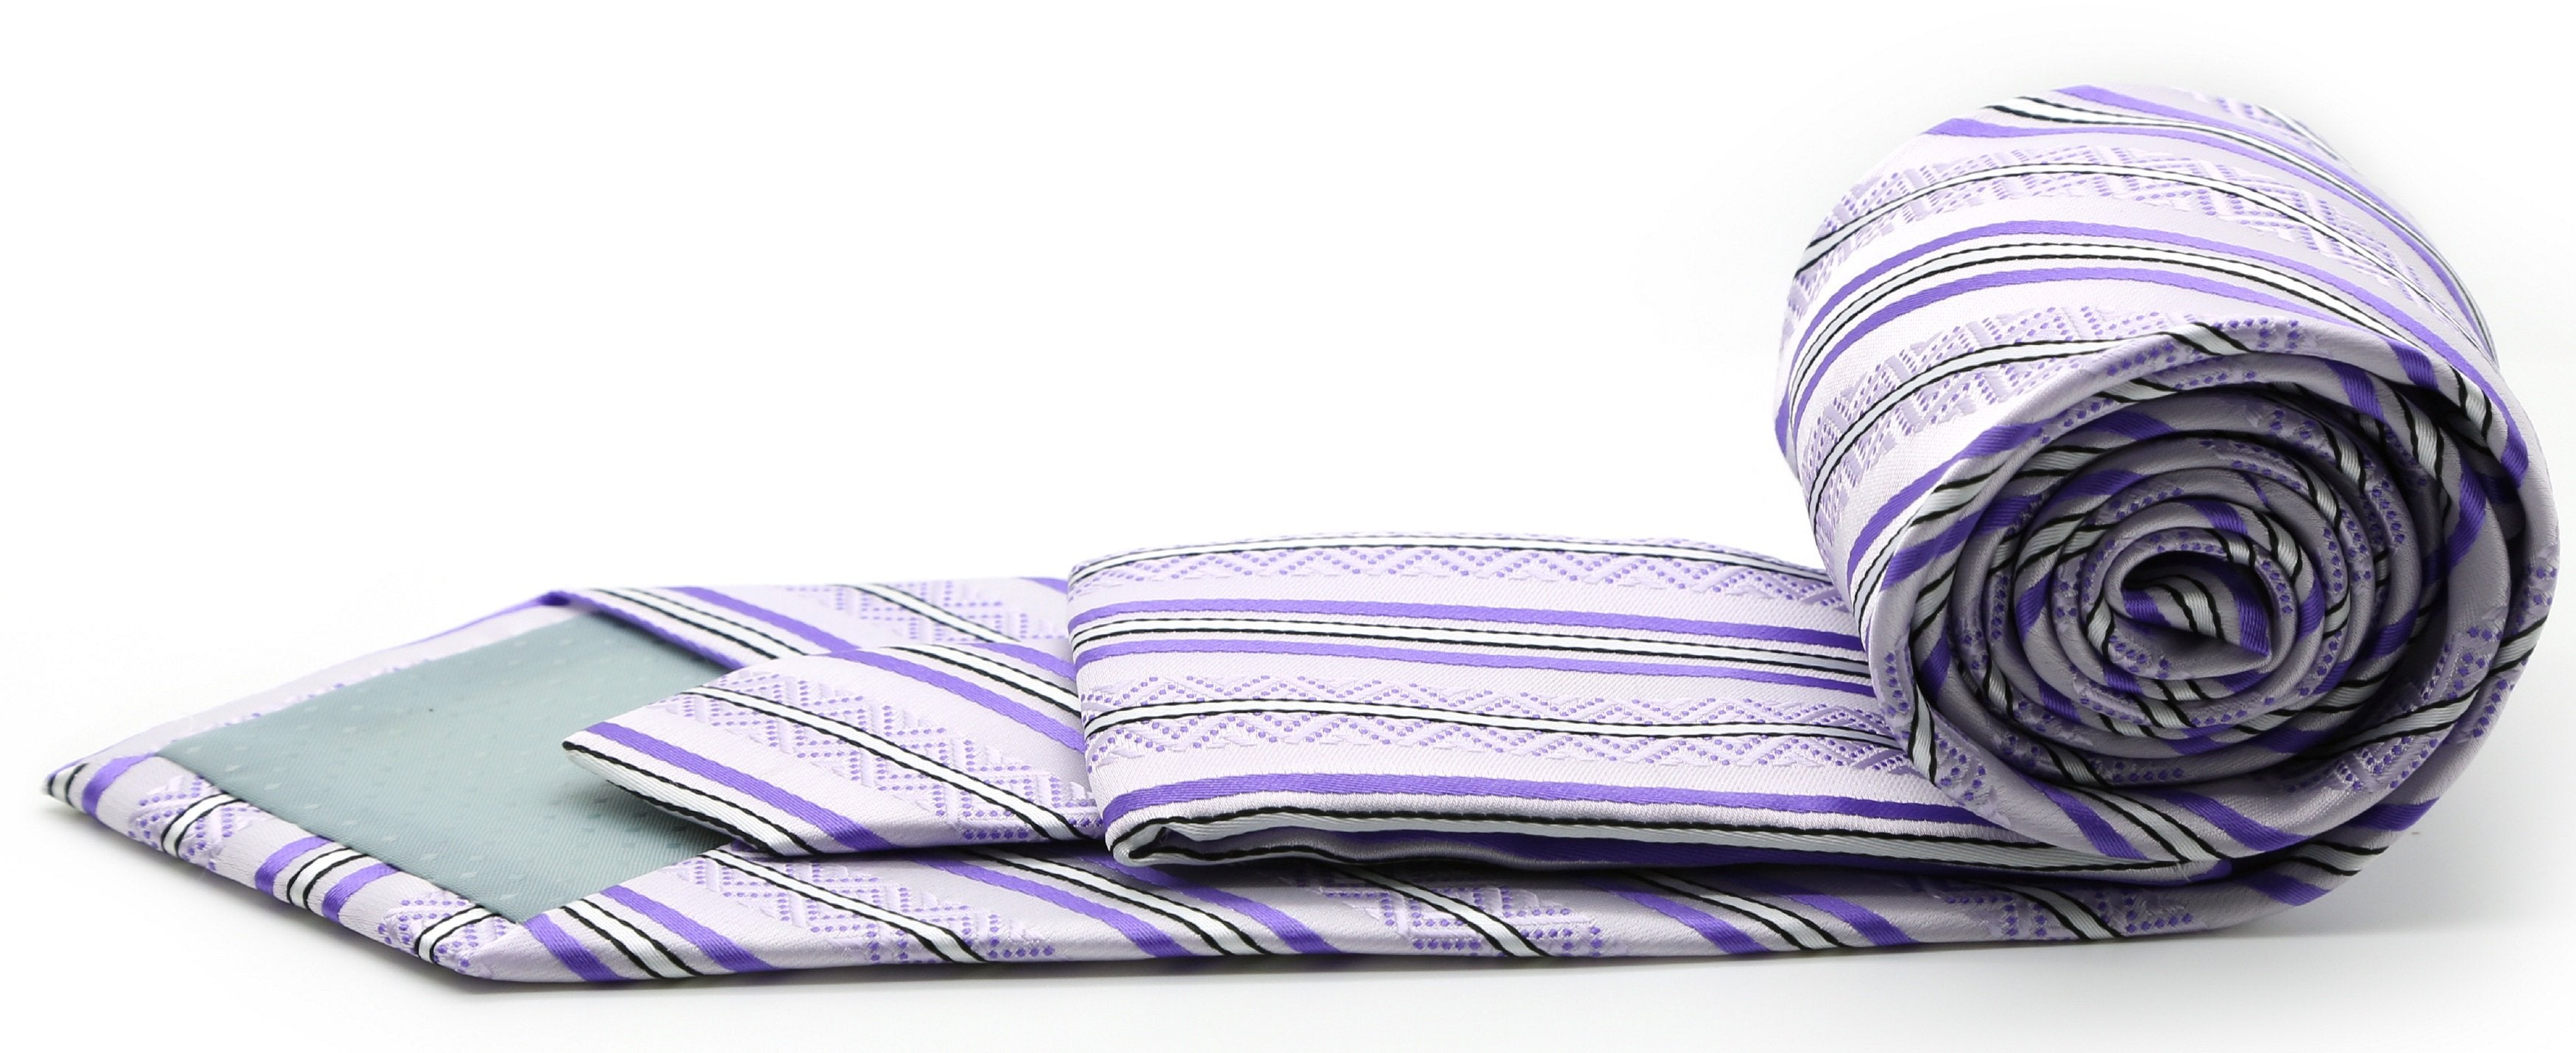 Mens Dads Classic Purple Striped Pattern Business Casual Necktie & Hanky Set H-12 - Giorgio's Menswear